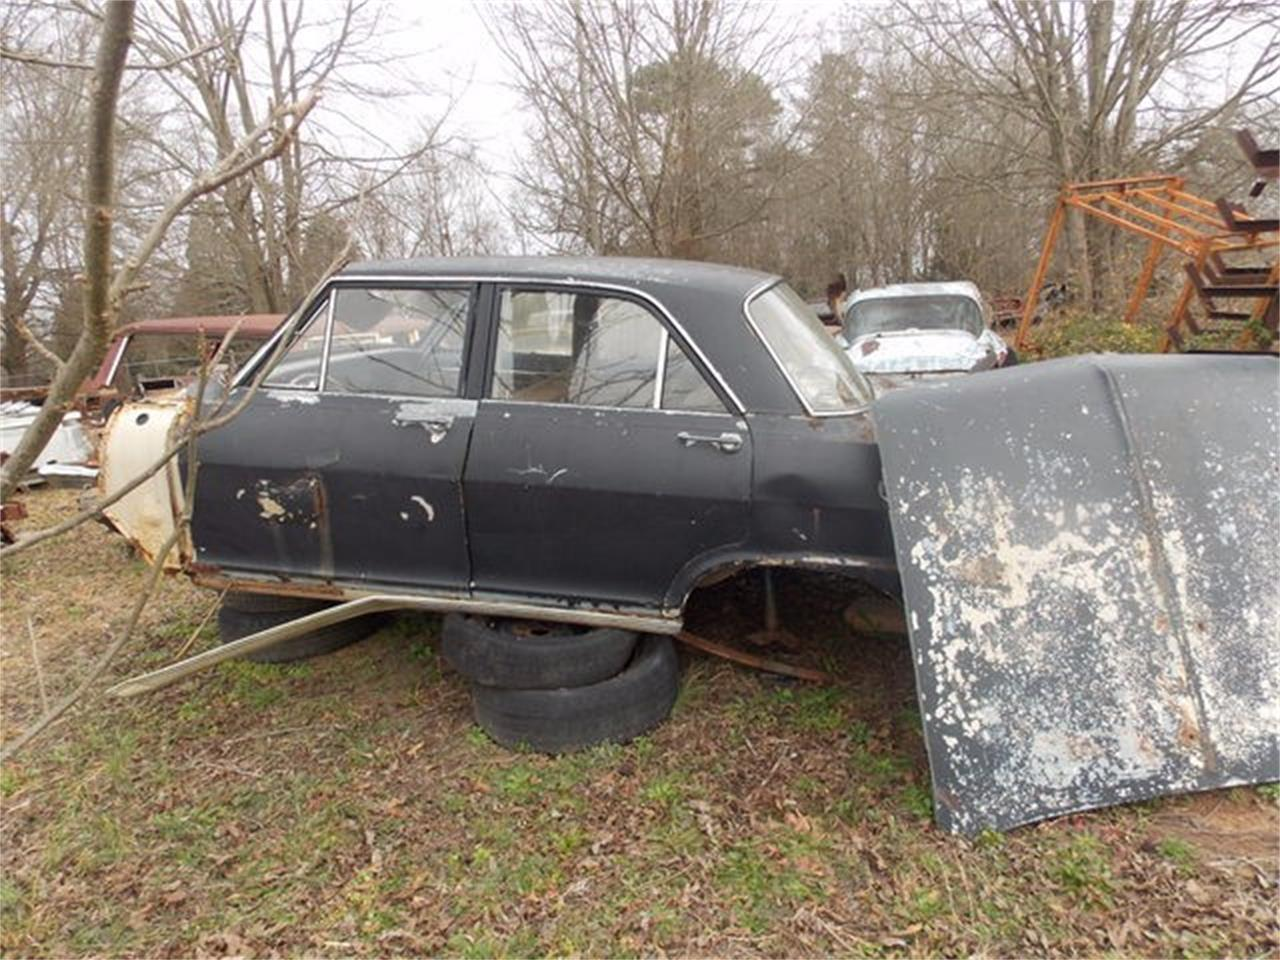 Large Picture of '65 Chevrolet Nova located in South Carolina - $1,000.00 Offered by Classic Cars of South Carolina - J1P8